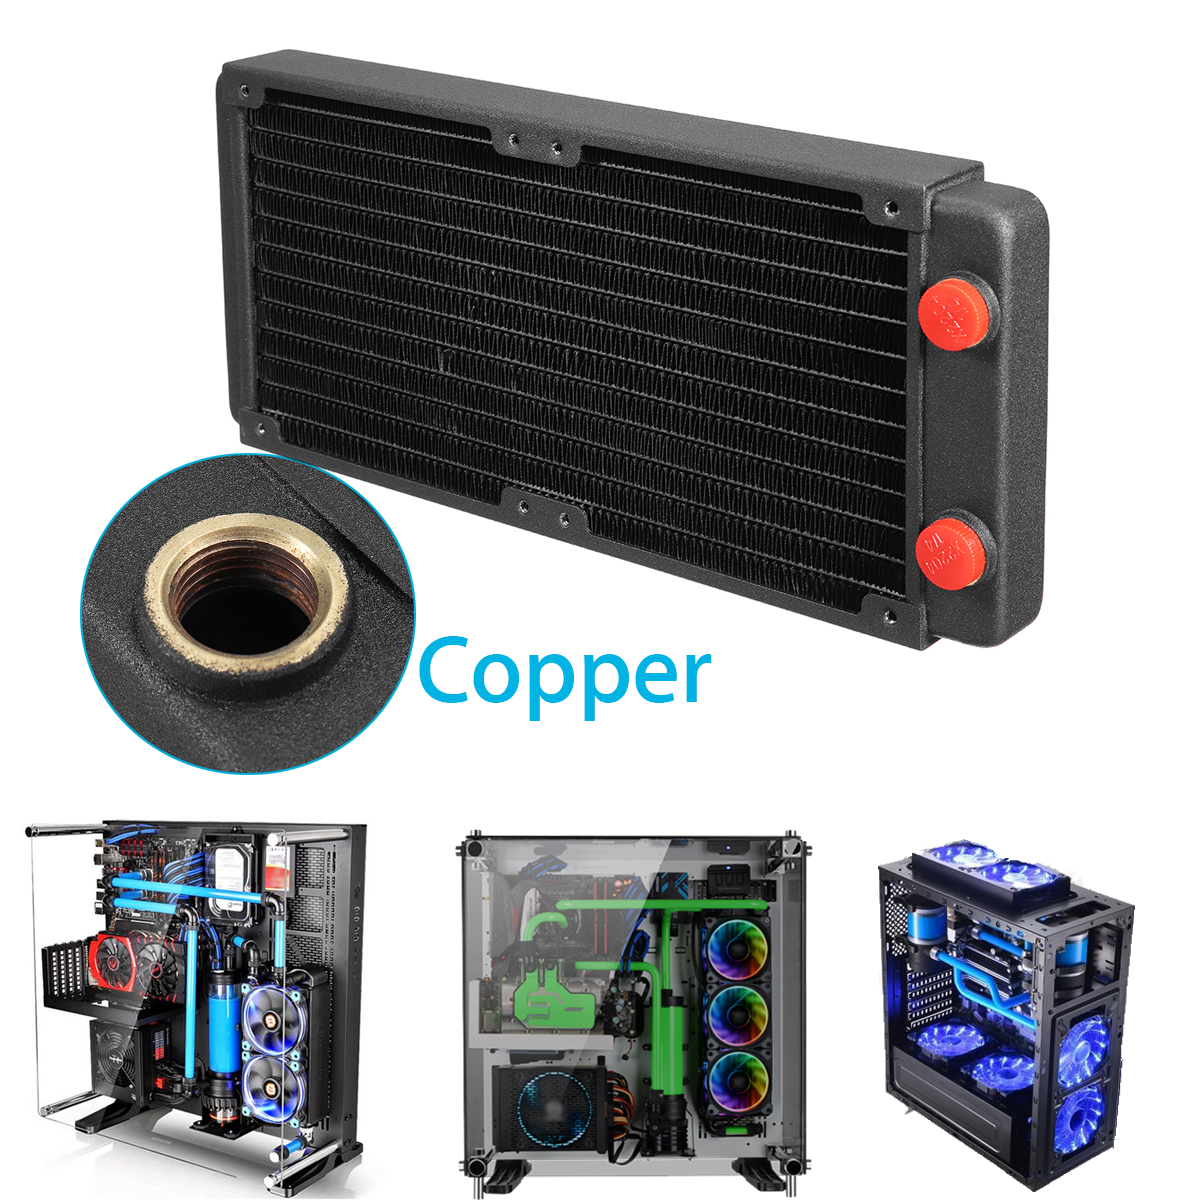 Copper Water Cooling 240mm Computer CPU Cooler Radiator Heatsink Radiator Exhaust Heat Exchanger Water Cooling Cooler copper base cpu water block water cooling cooler computer cooling radiator for intel